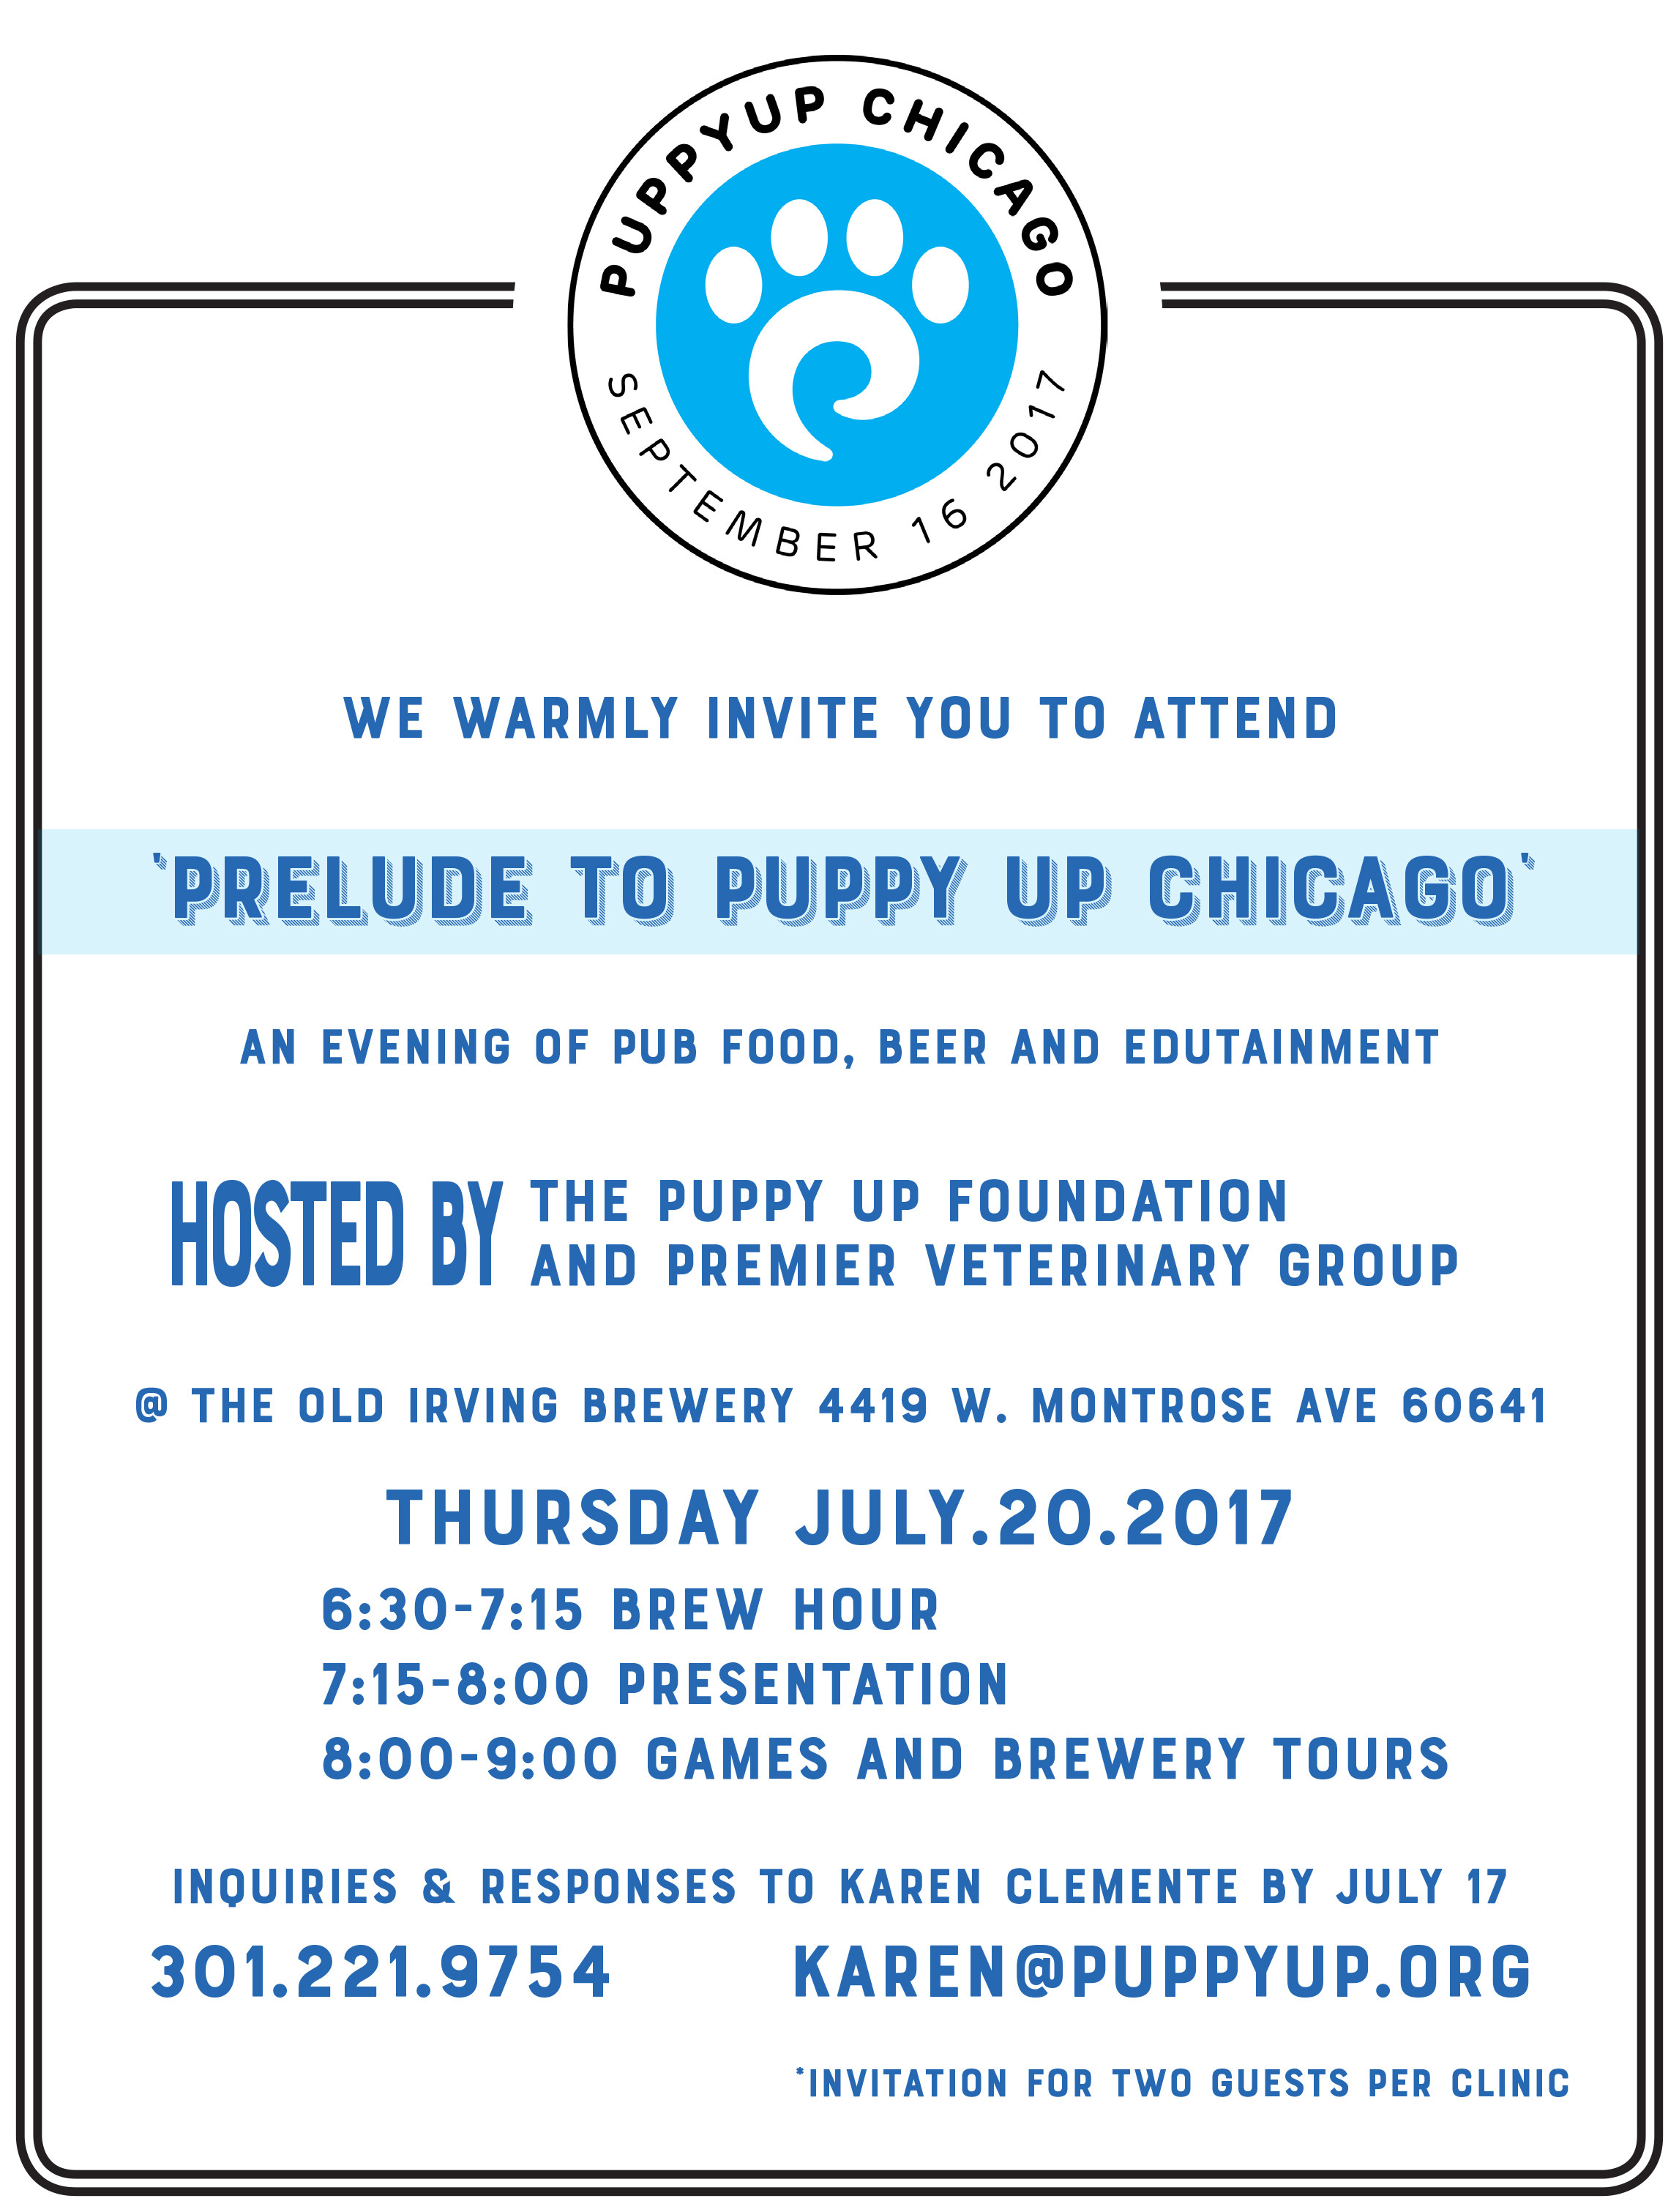 Prelude-to-PuppyUp-Chicago-Invitation.jpg